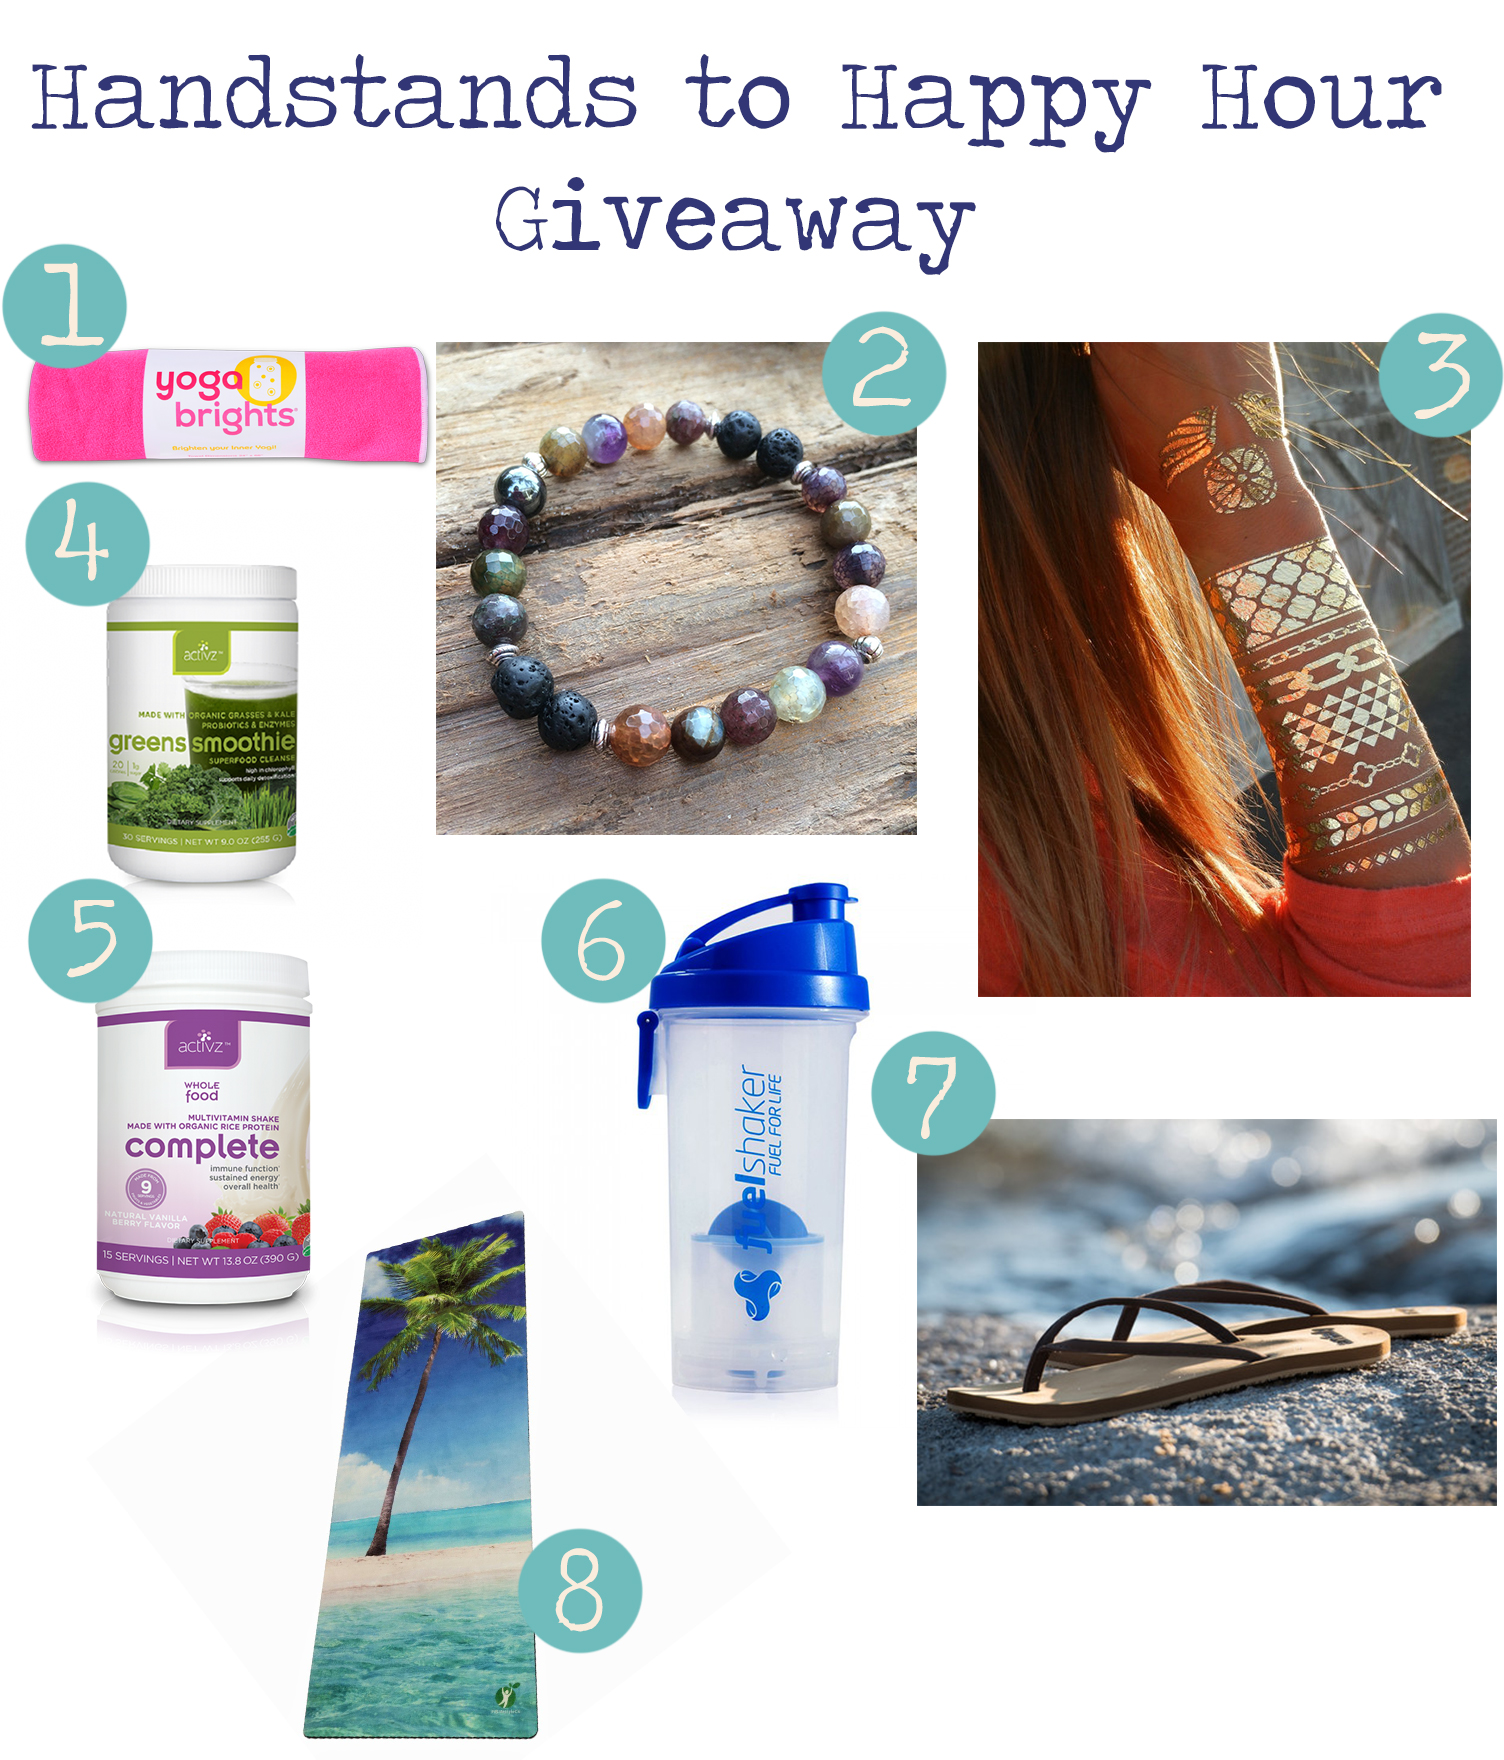 Pin now and enter to win our handstands to happy hour giveaway!